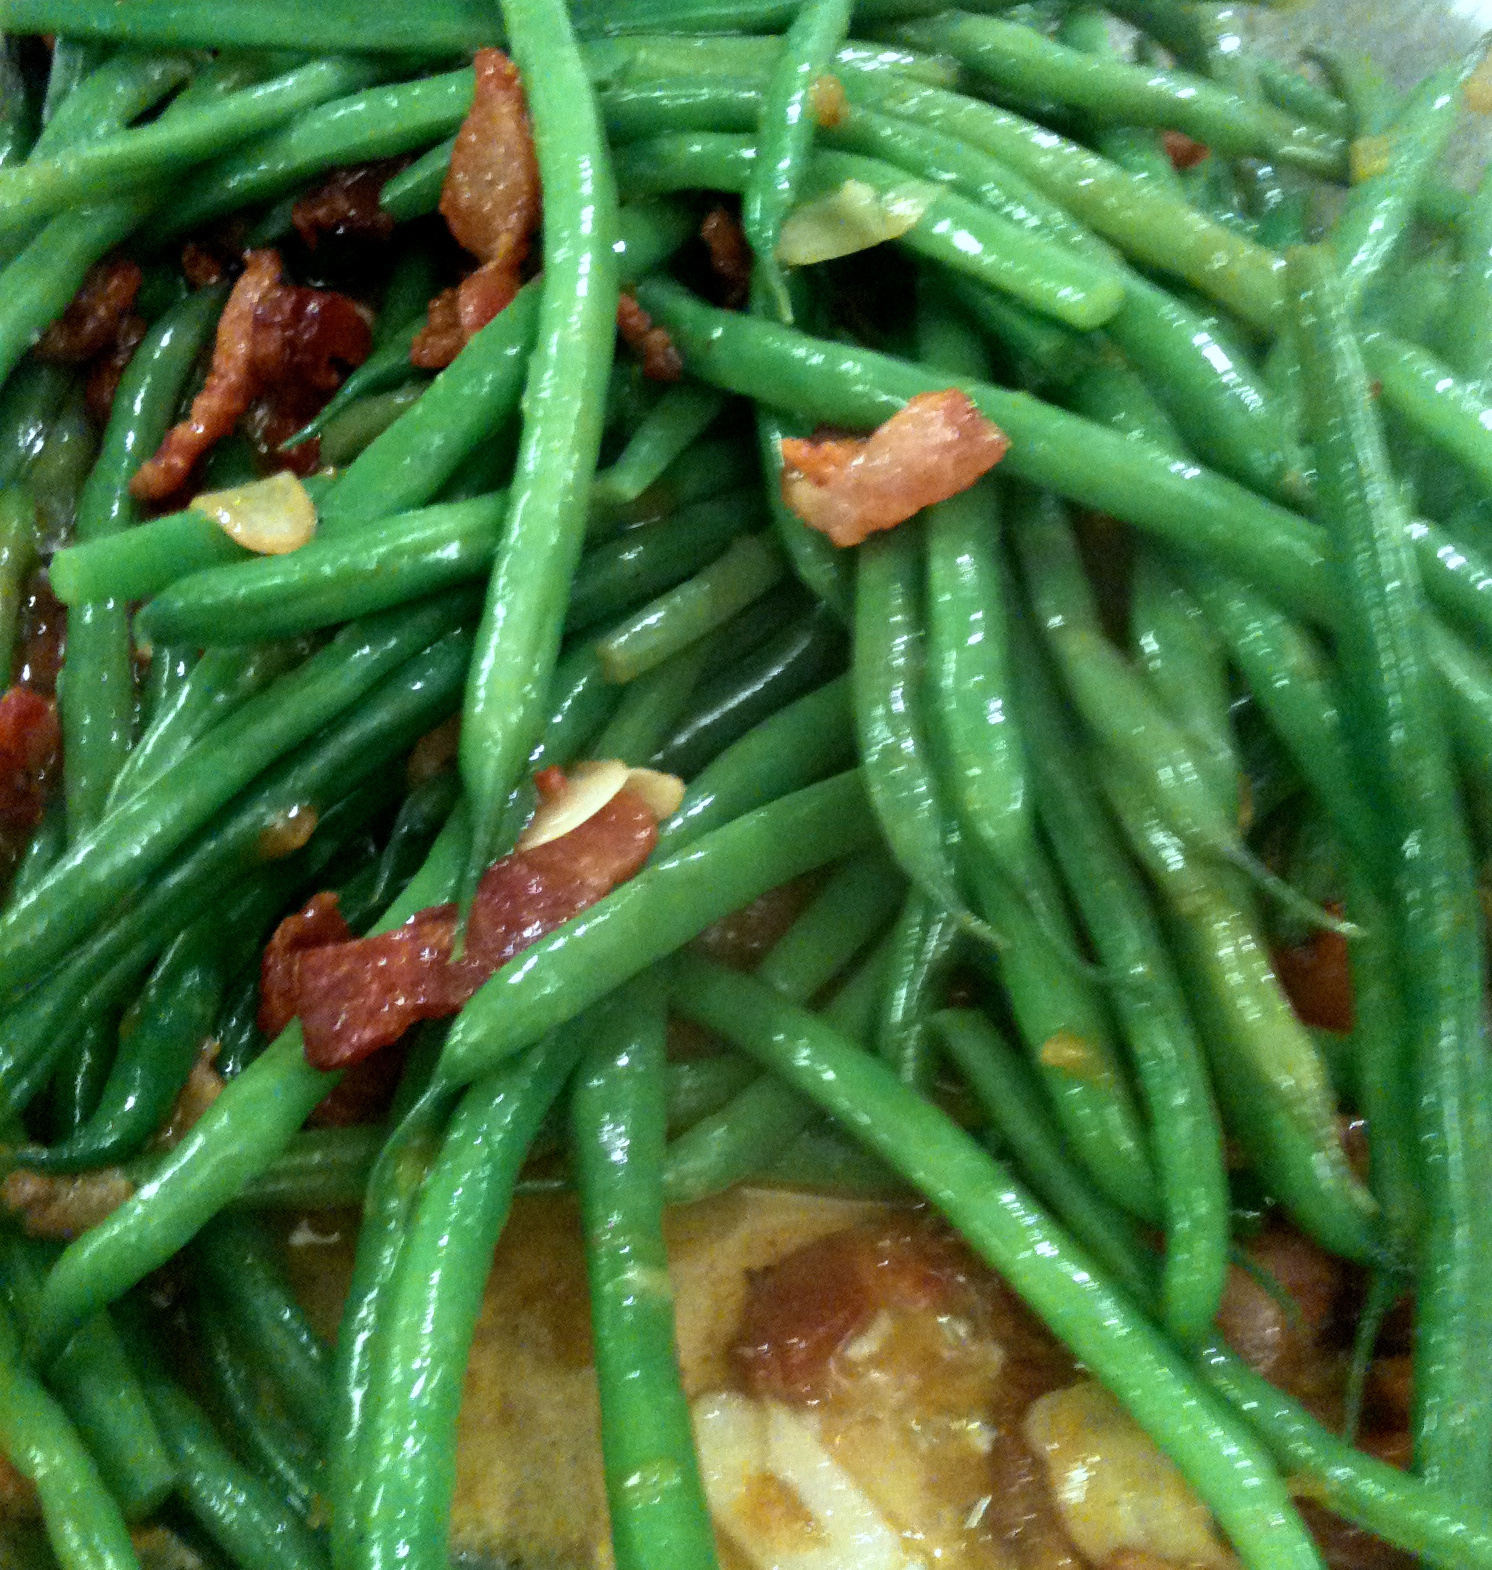 The yummiest haricot verts (French green beans) you'll ever eat! #Real Food Girl: Unmodified